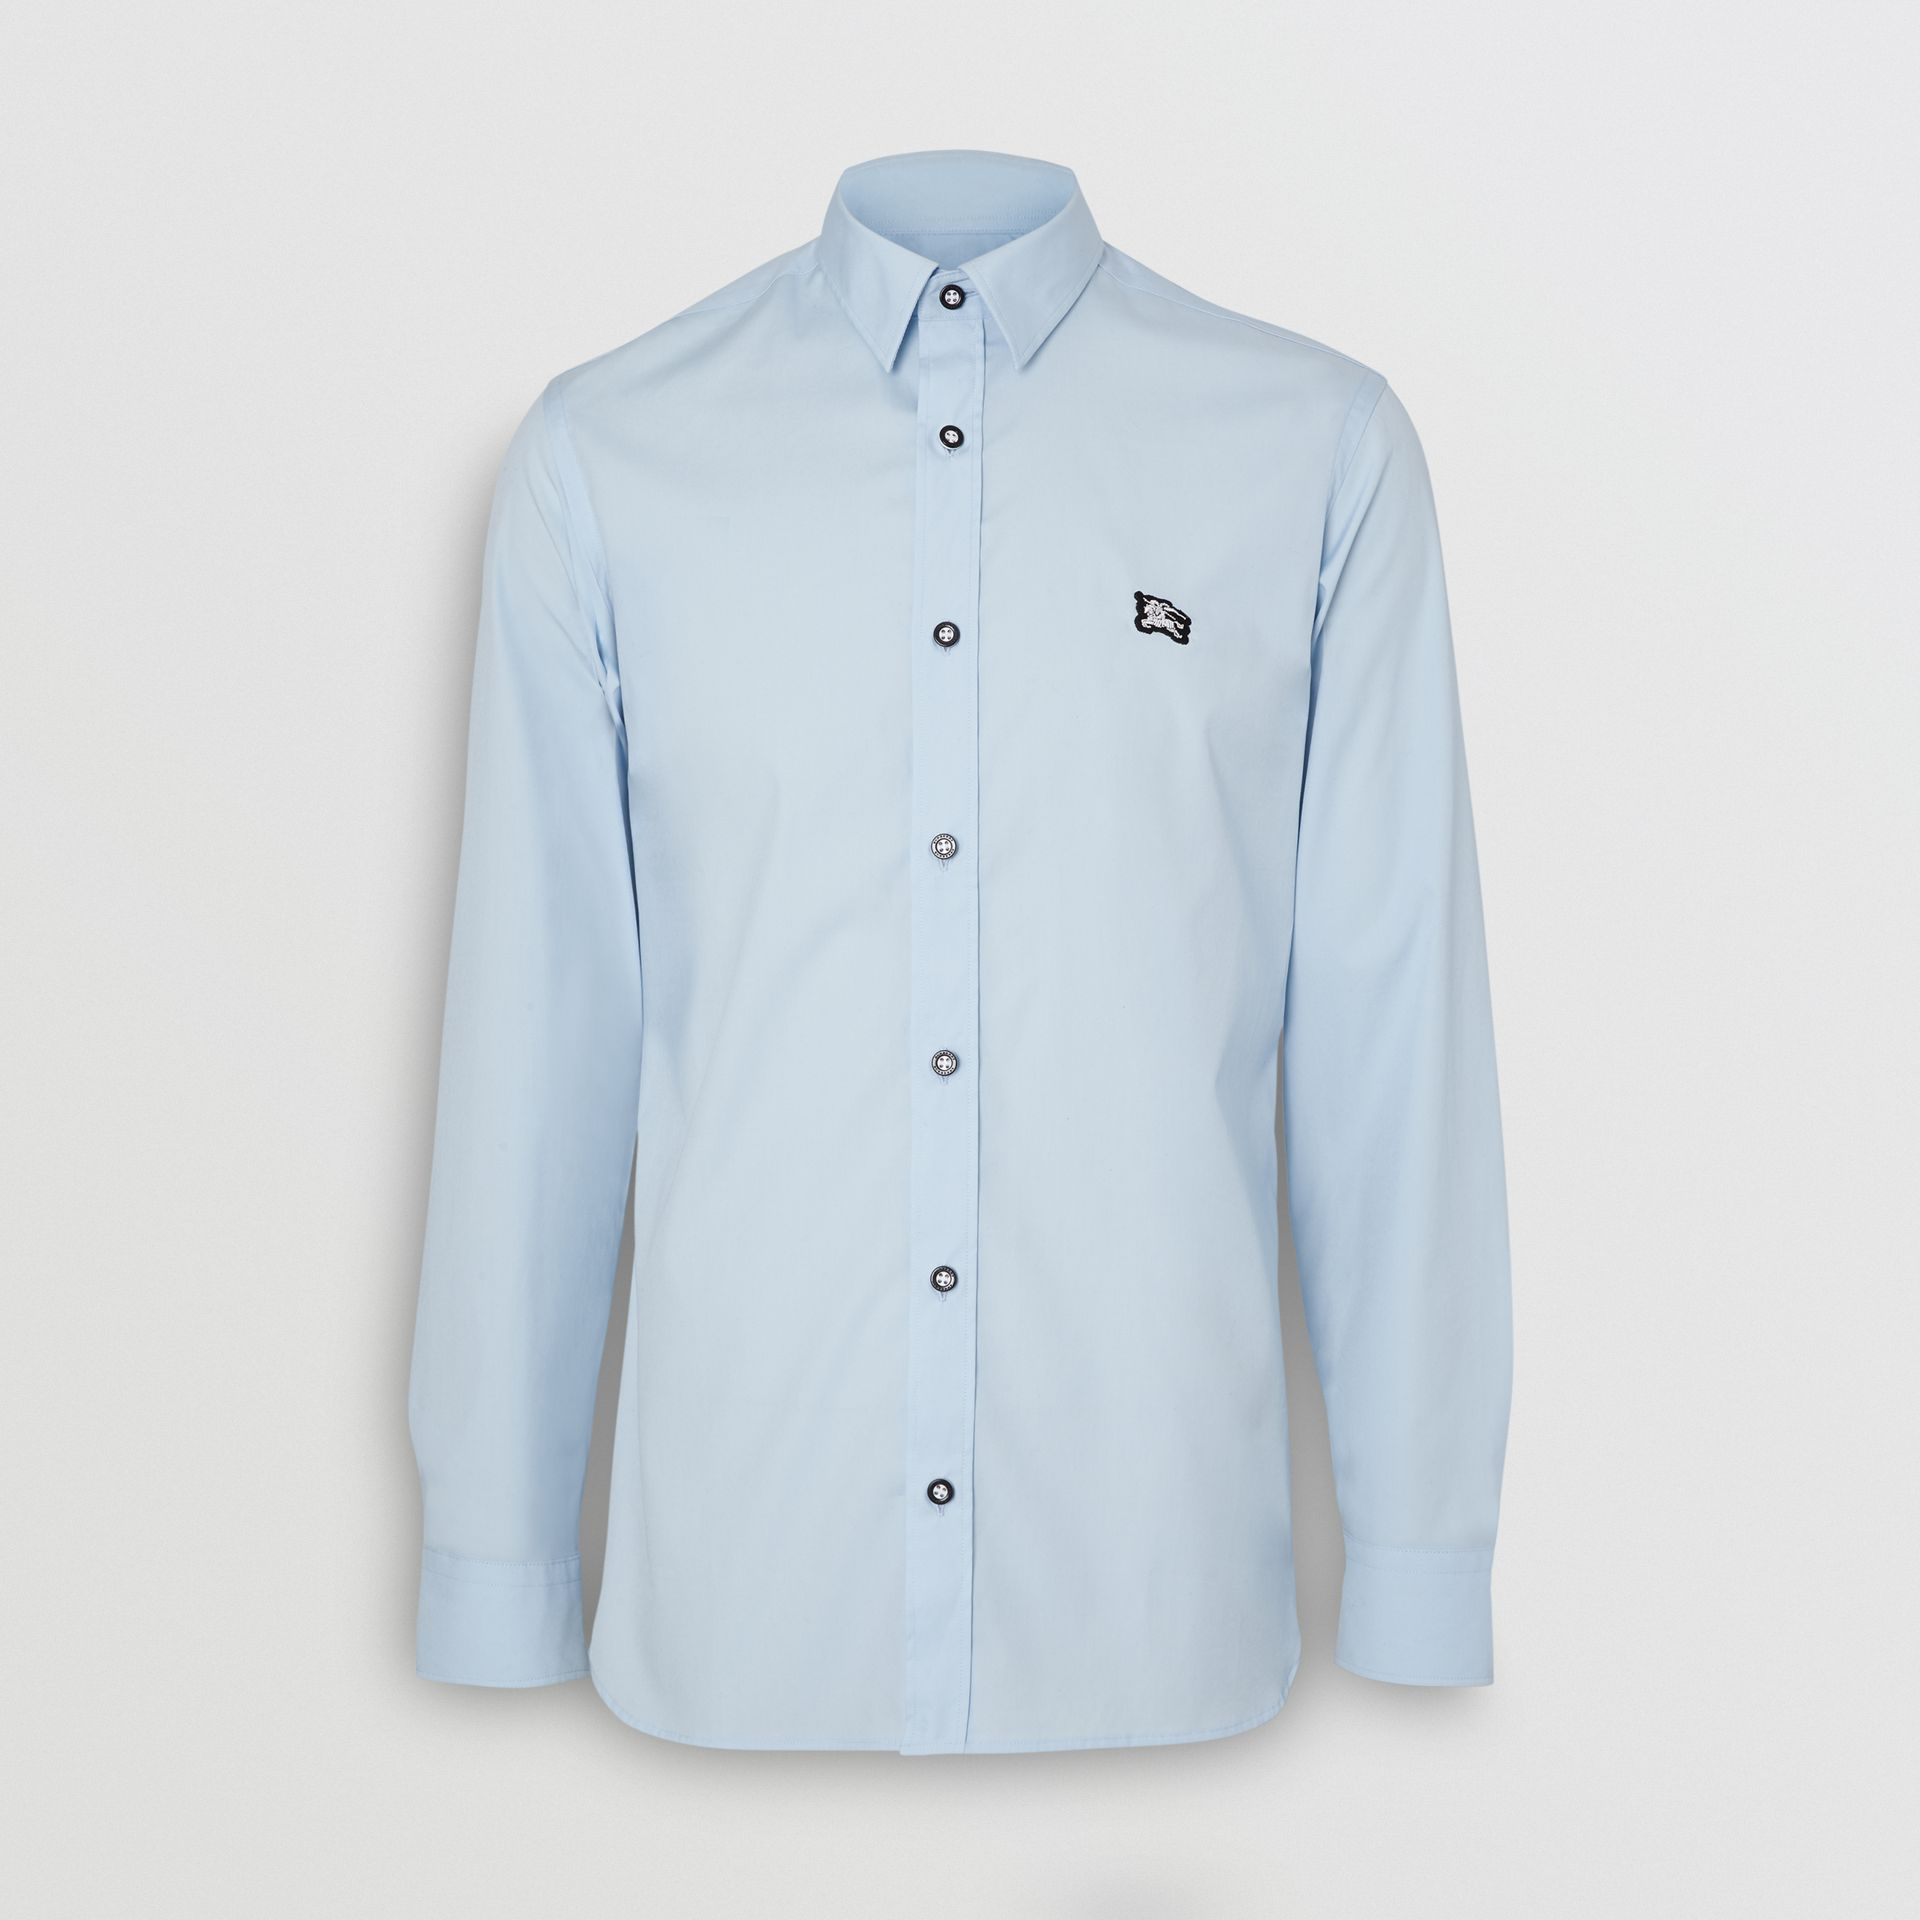 Contrast Button Stretch Cotton Shirt in Pale Blue - Men | Burberry - gallery image 2